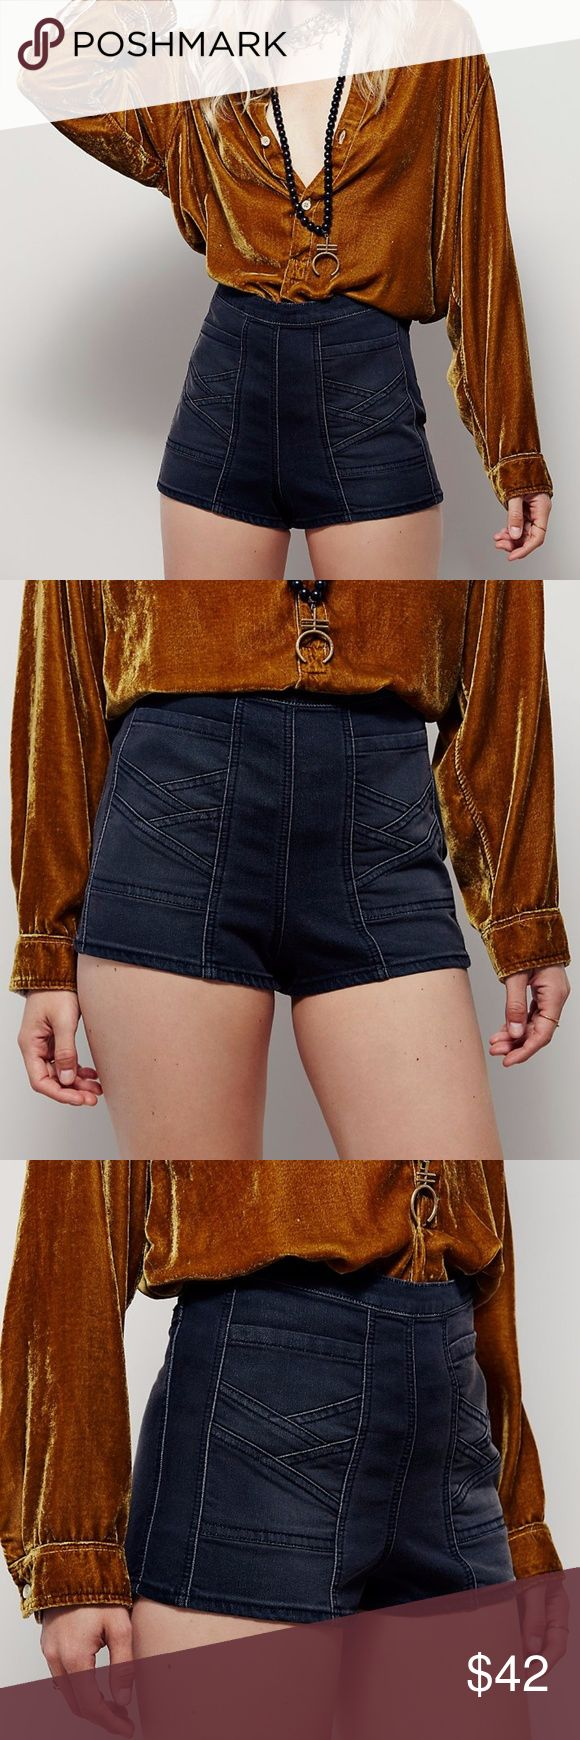 Free People Black Radar Love High Rise Shorts NWOT.  These high-rise black denim shorts feature a super stretch fabric for a tight-to-the body fit. Deep front pockets with stitched seam detailing for an elevated design. Side zip with hook-and-eye closure for an easy wear.  Material: 53% cotton, 23% rayon, 22% polyester, 2% spandex Free People Shorts Jean Shorts